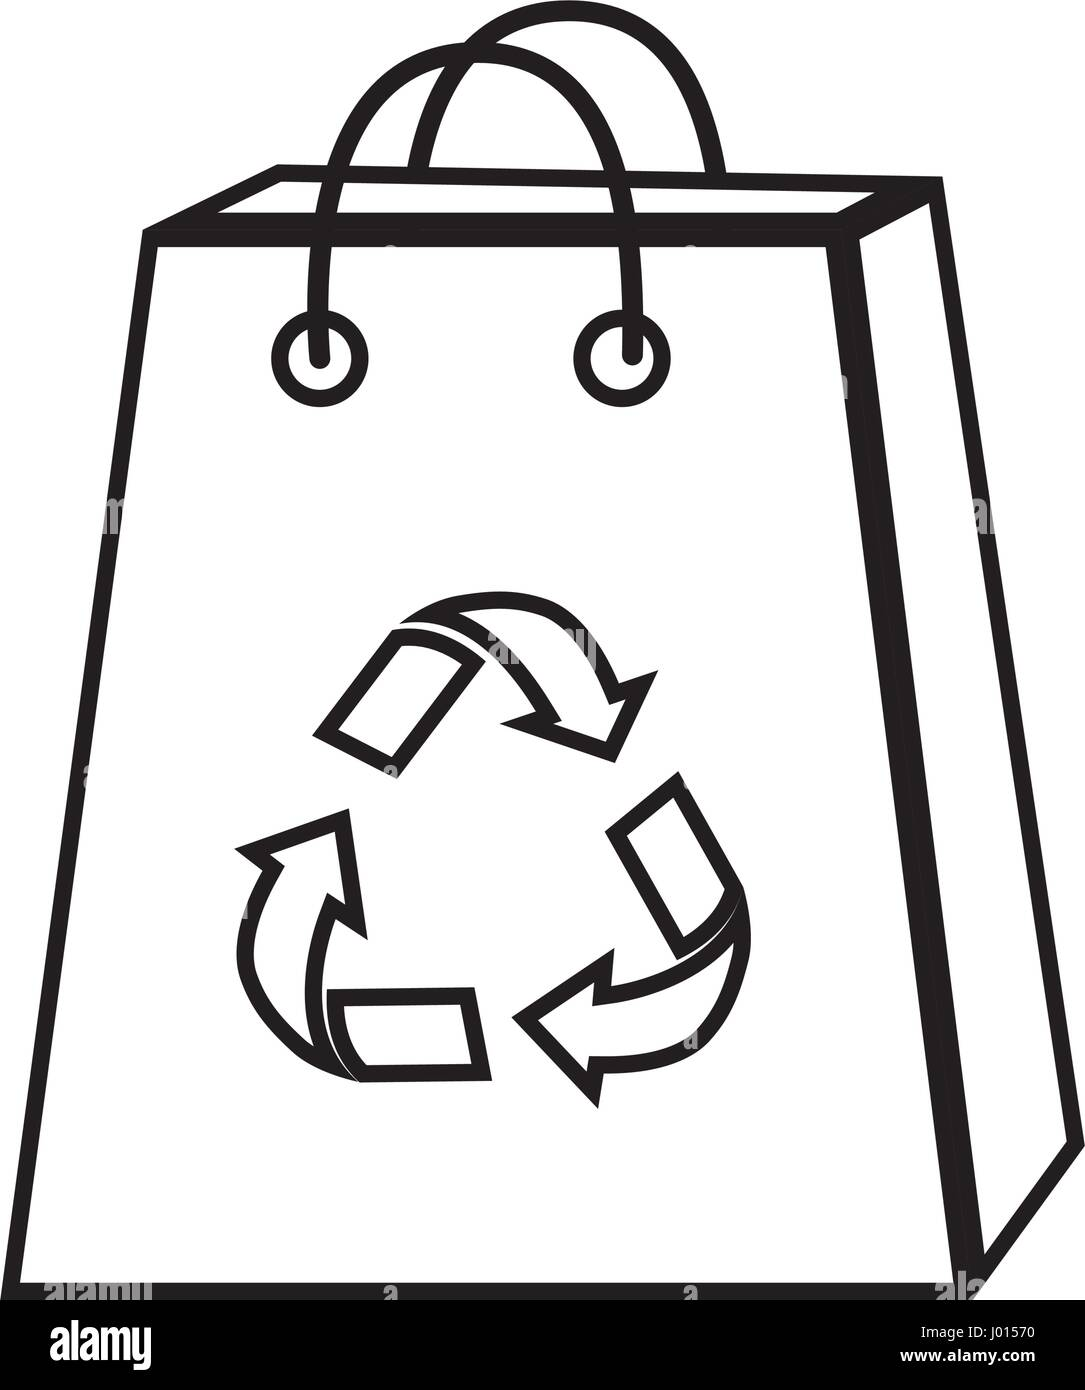 silhouette bag with reduce, reuse and recycle symbol - Stock Image